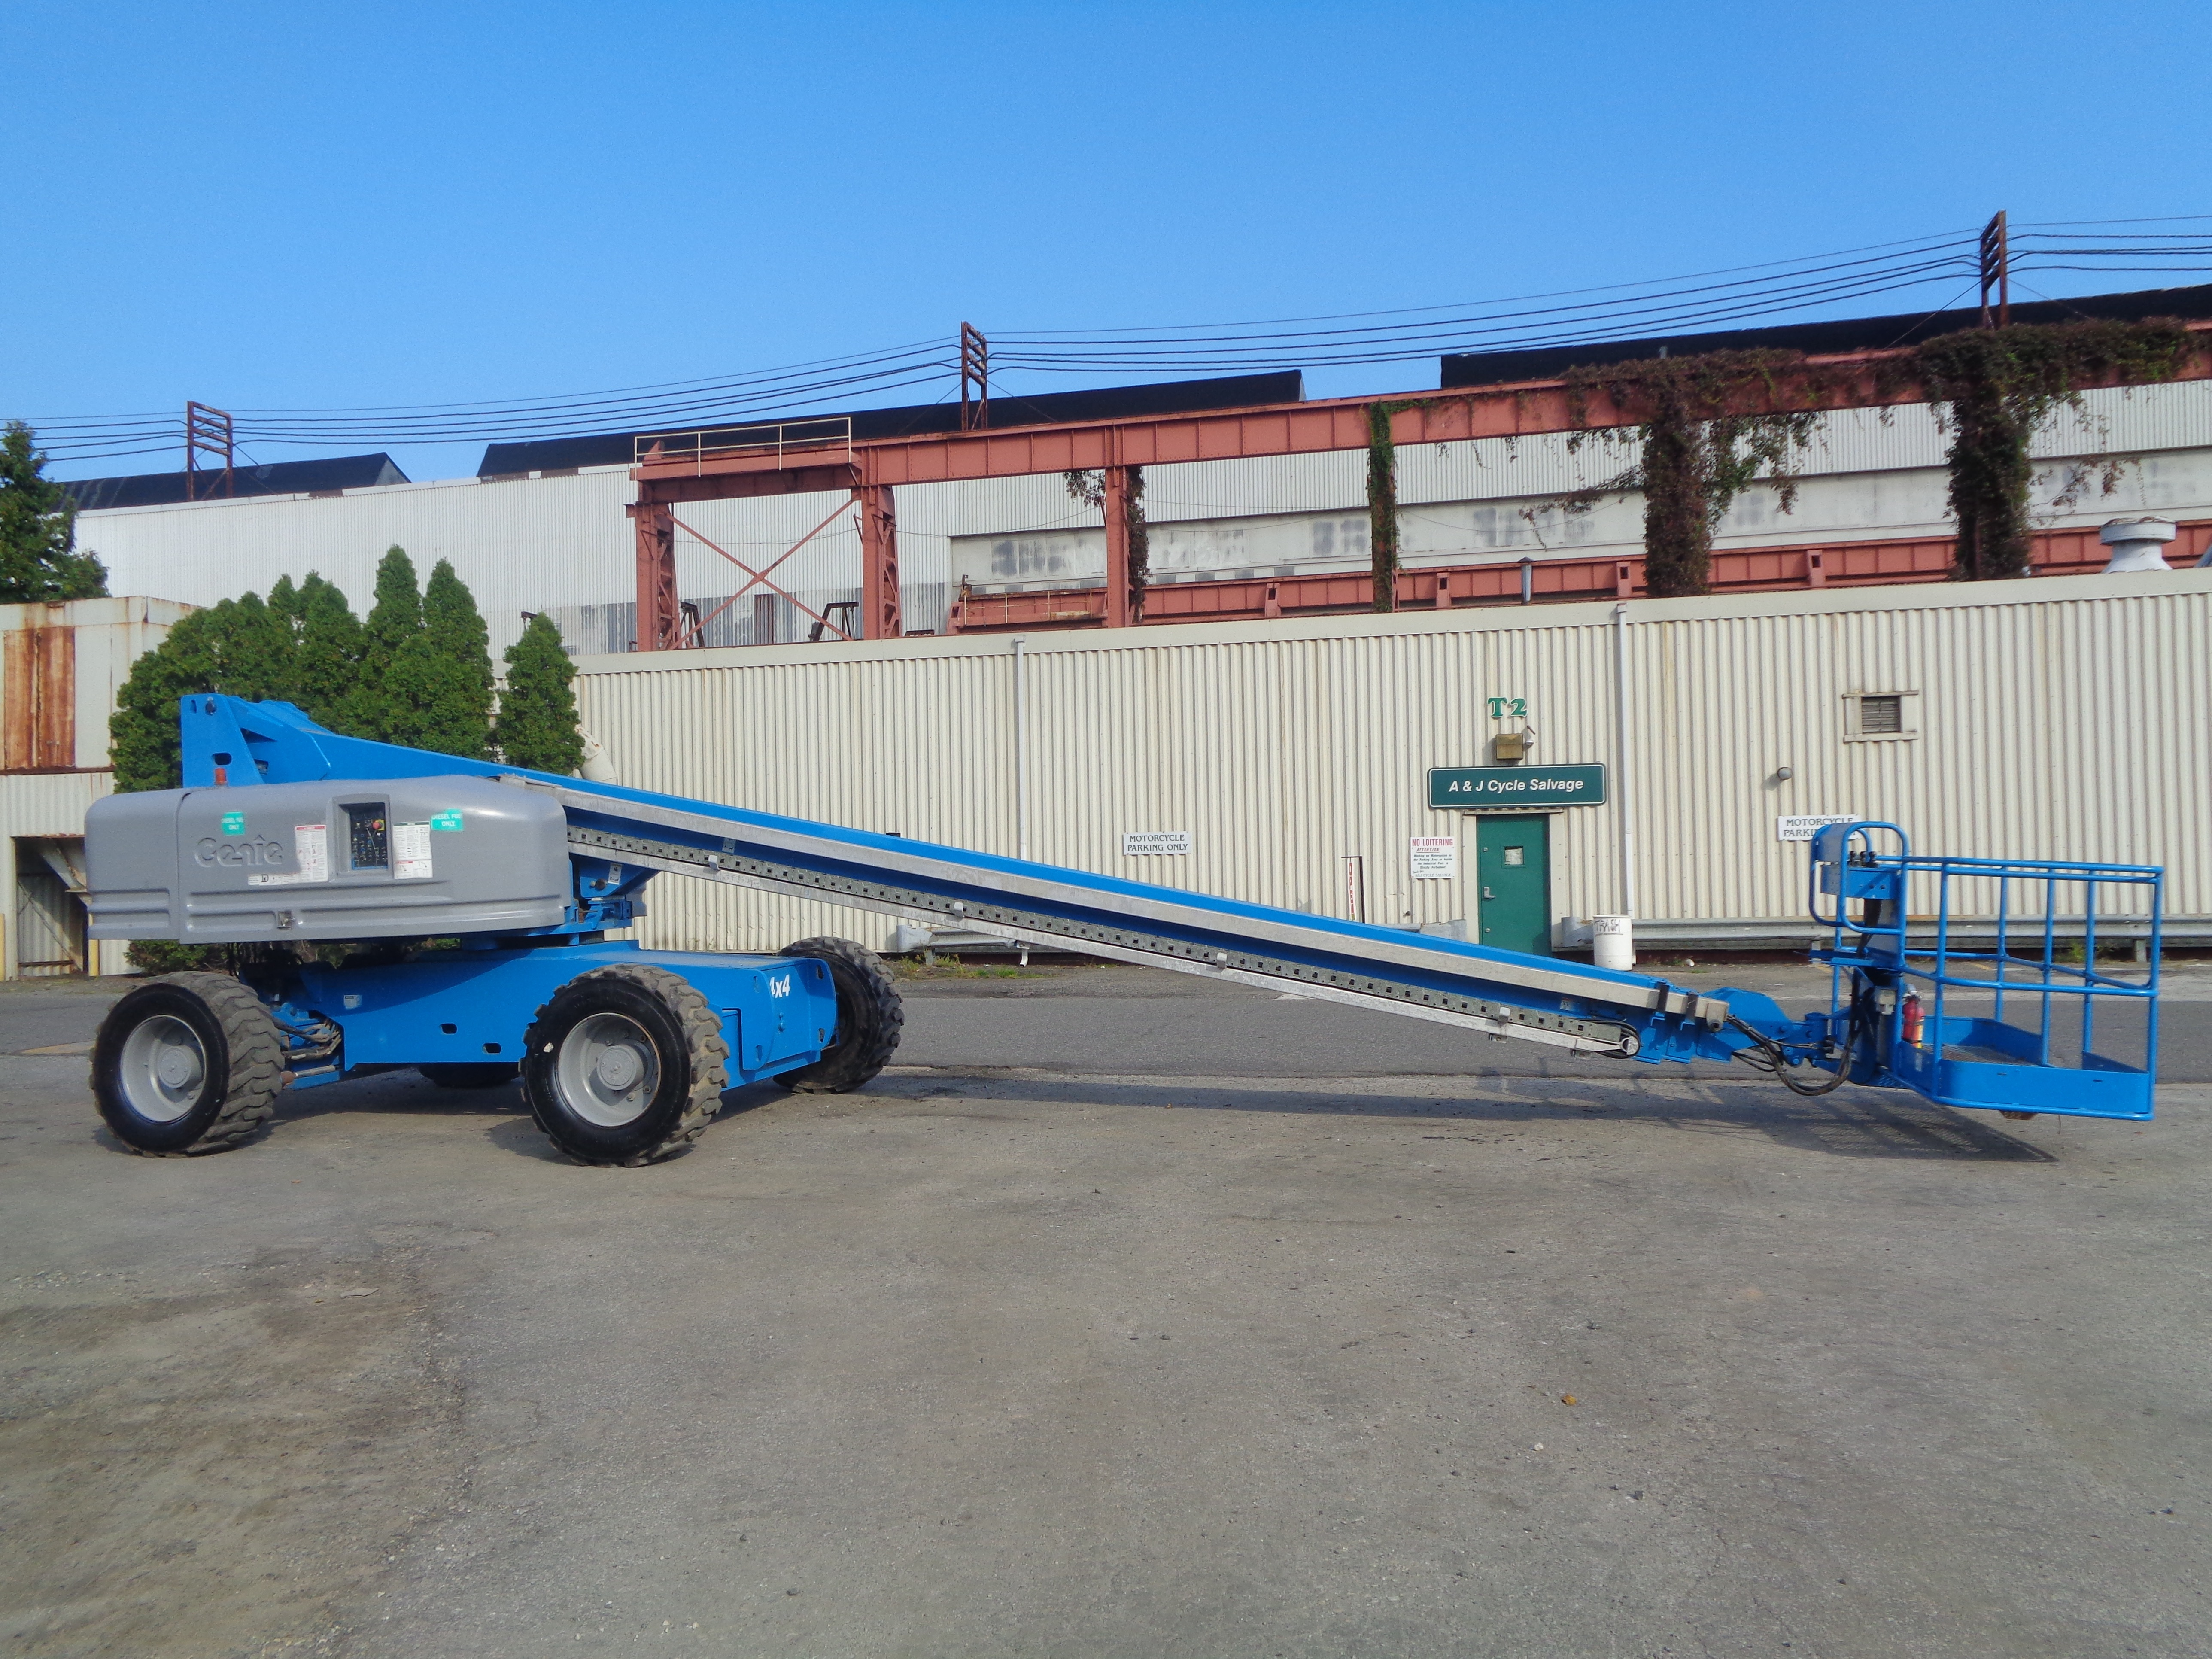 Genie S80 80ft Boom Lift - Image 10 of 22